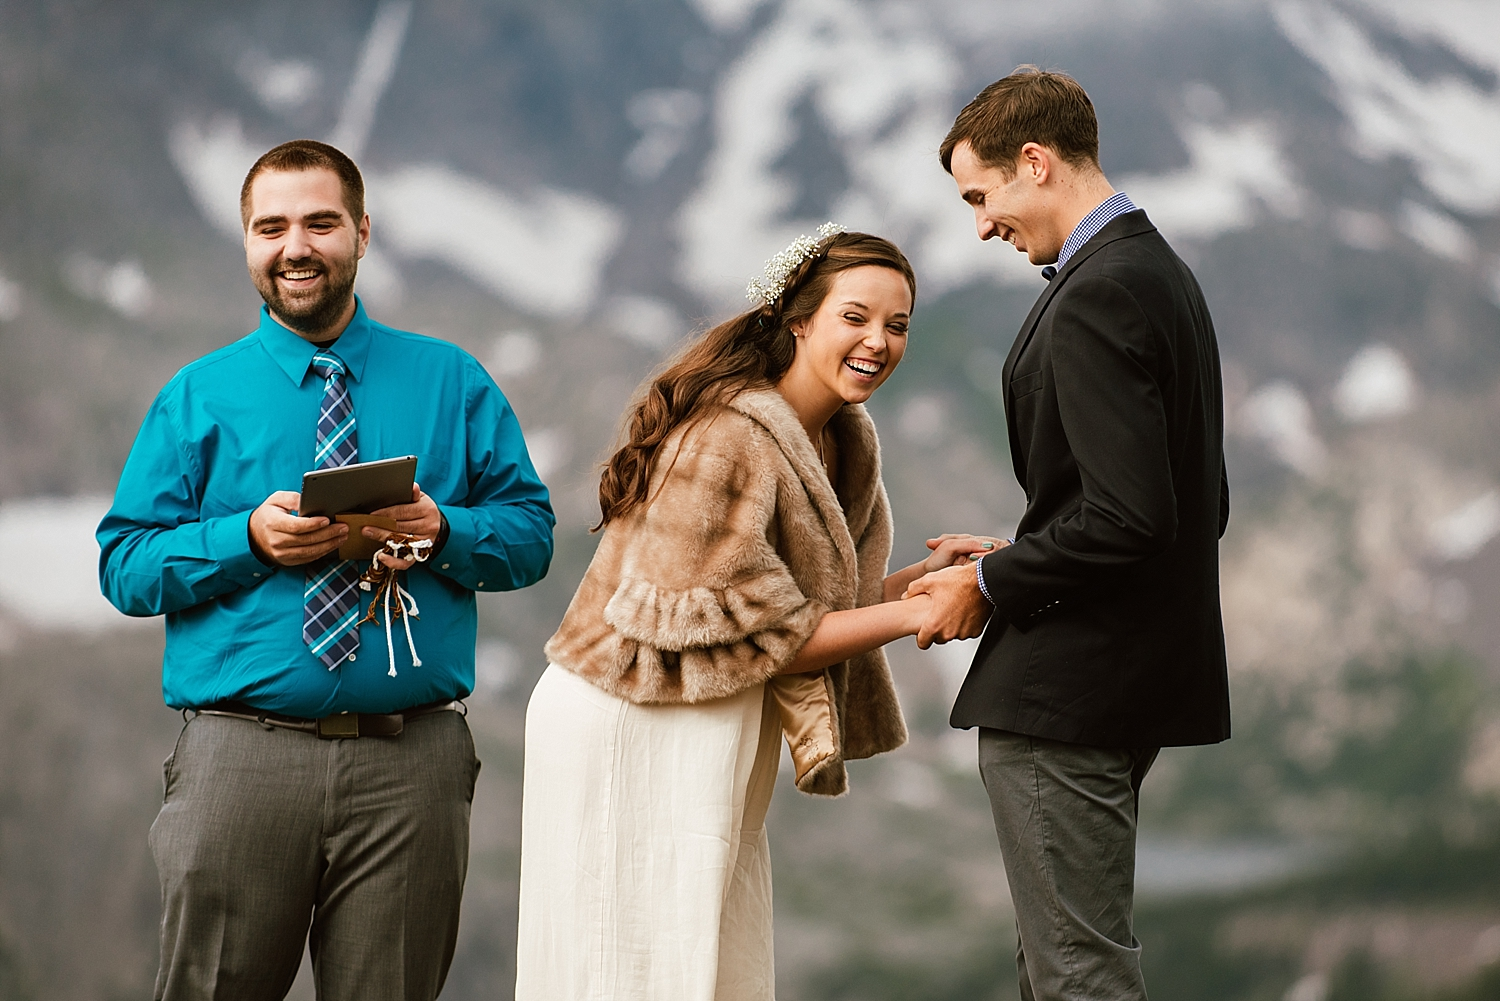 Jessica's fur shawl is absolutely sunning! I love great bridal outfits for a cold mountain wedding day! | RMNP elopement photos by adventure wedding photographer, Maddie Mae.